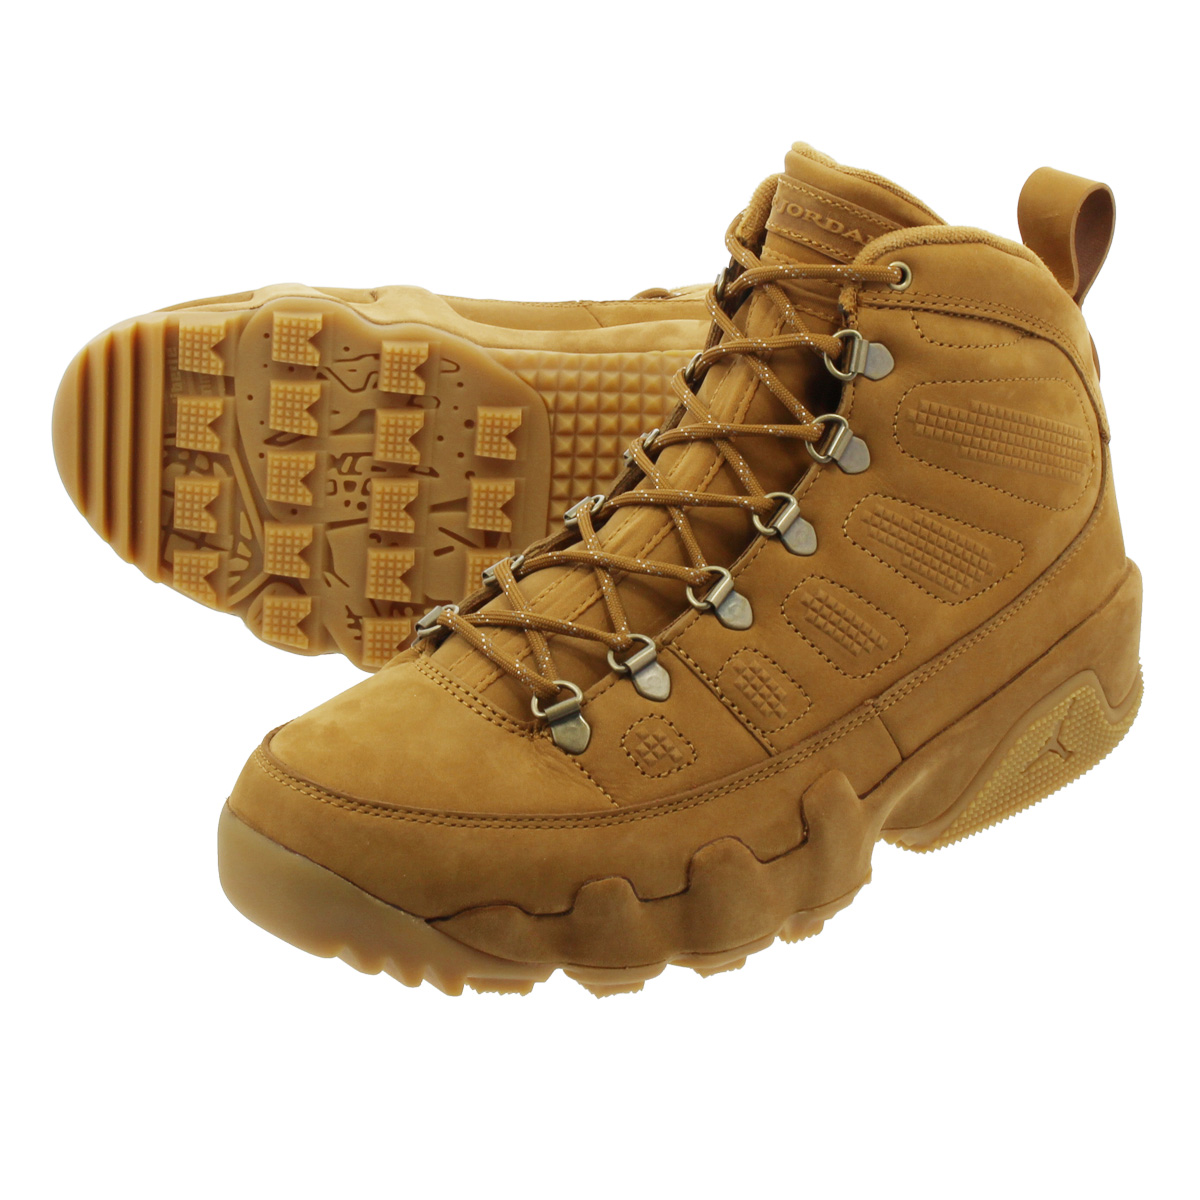 NIKE AIR JORDAN 9 RETRO NRG ナイキ エアー ジョーダン9 レトロ NRG WHEAT/WHEAT/BAROQUE BROWN ar4491-700